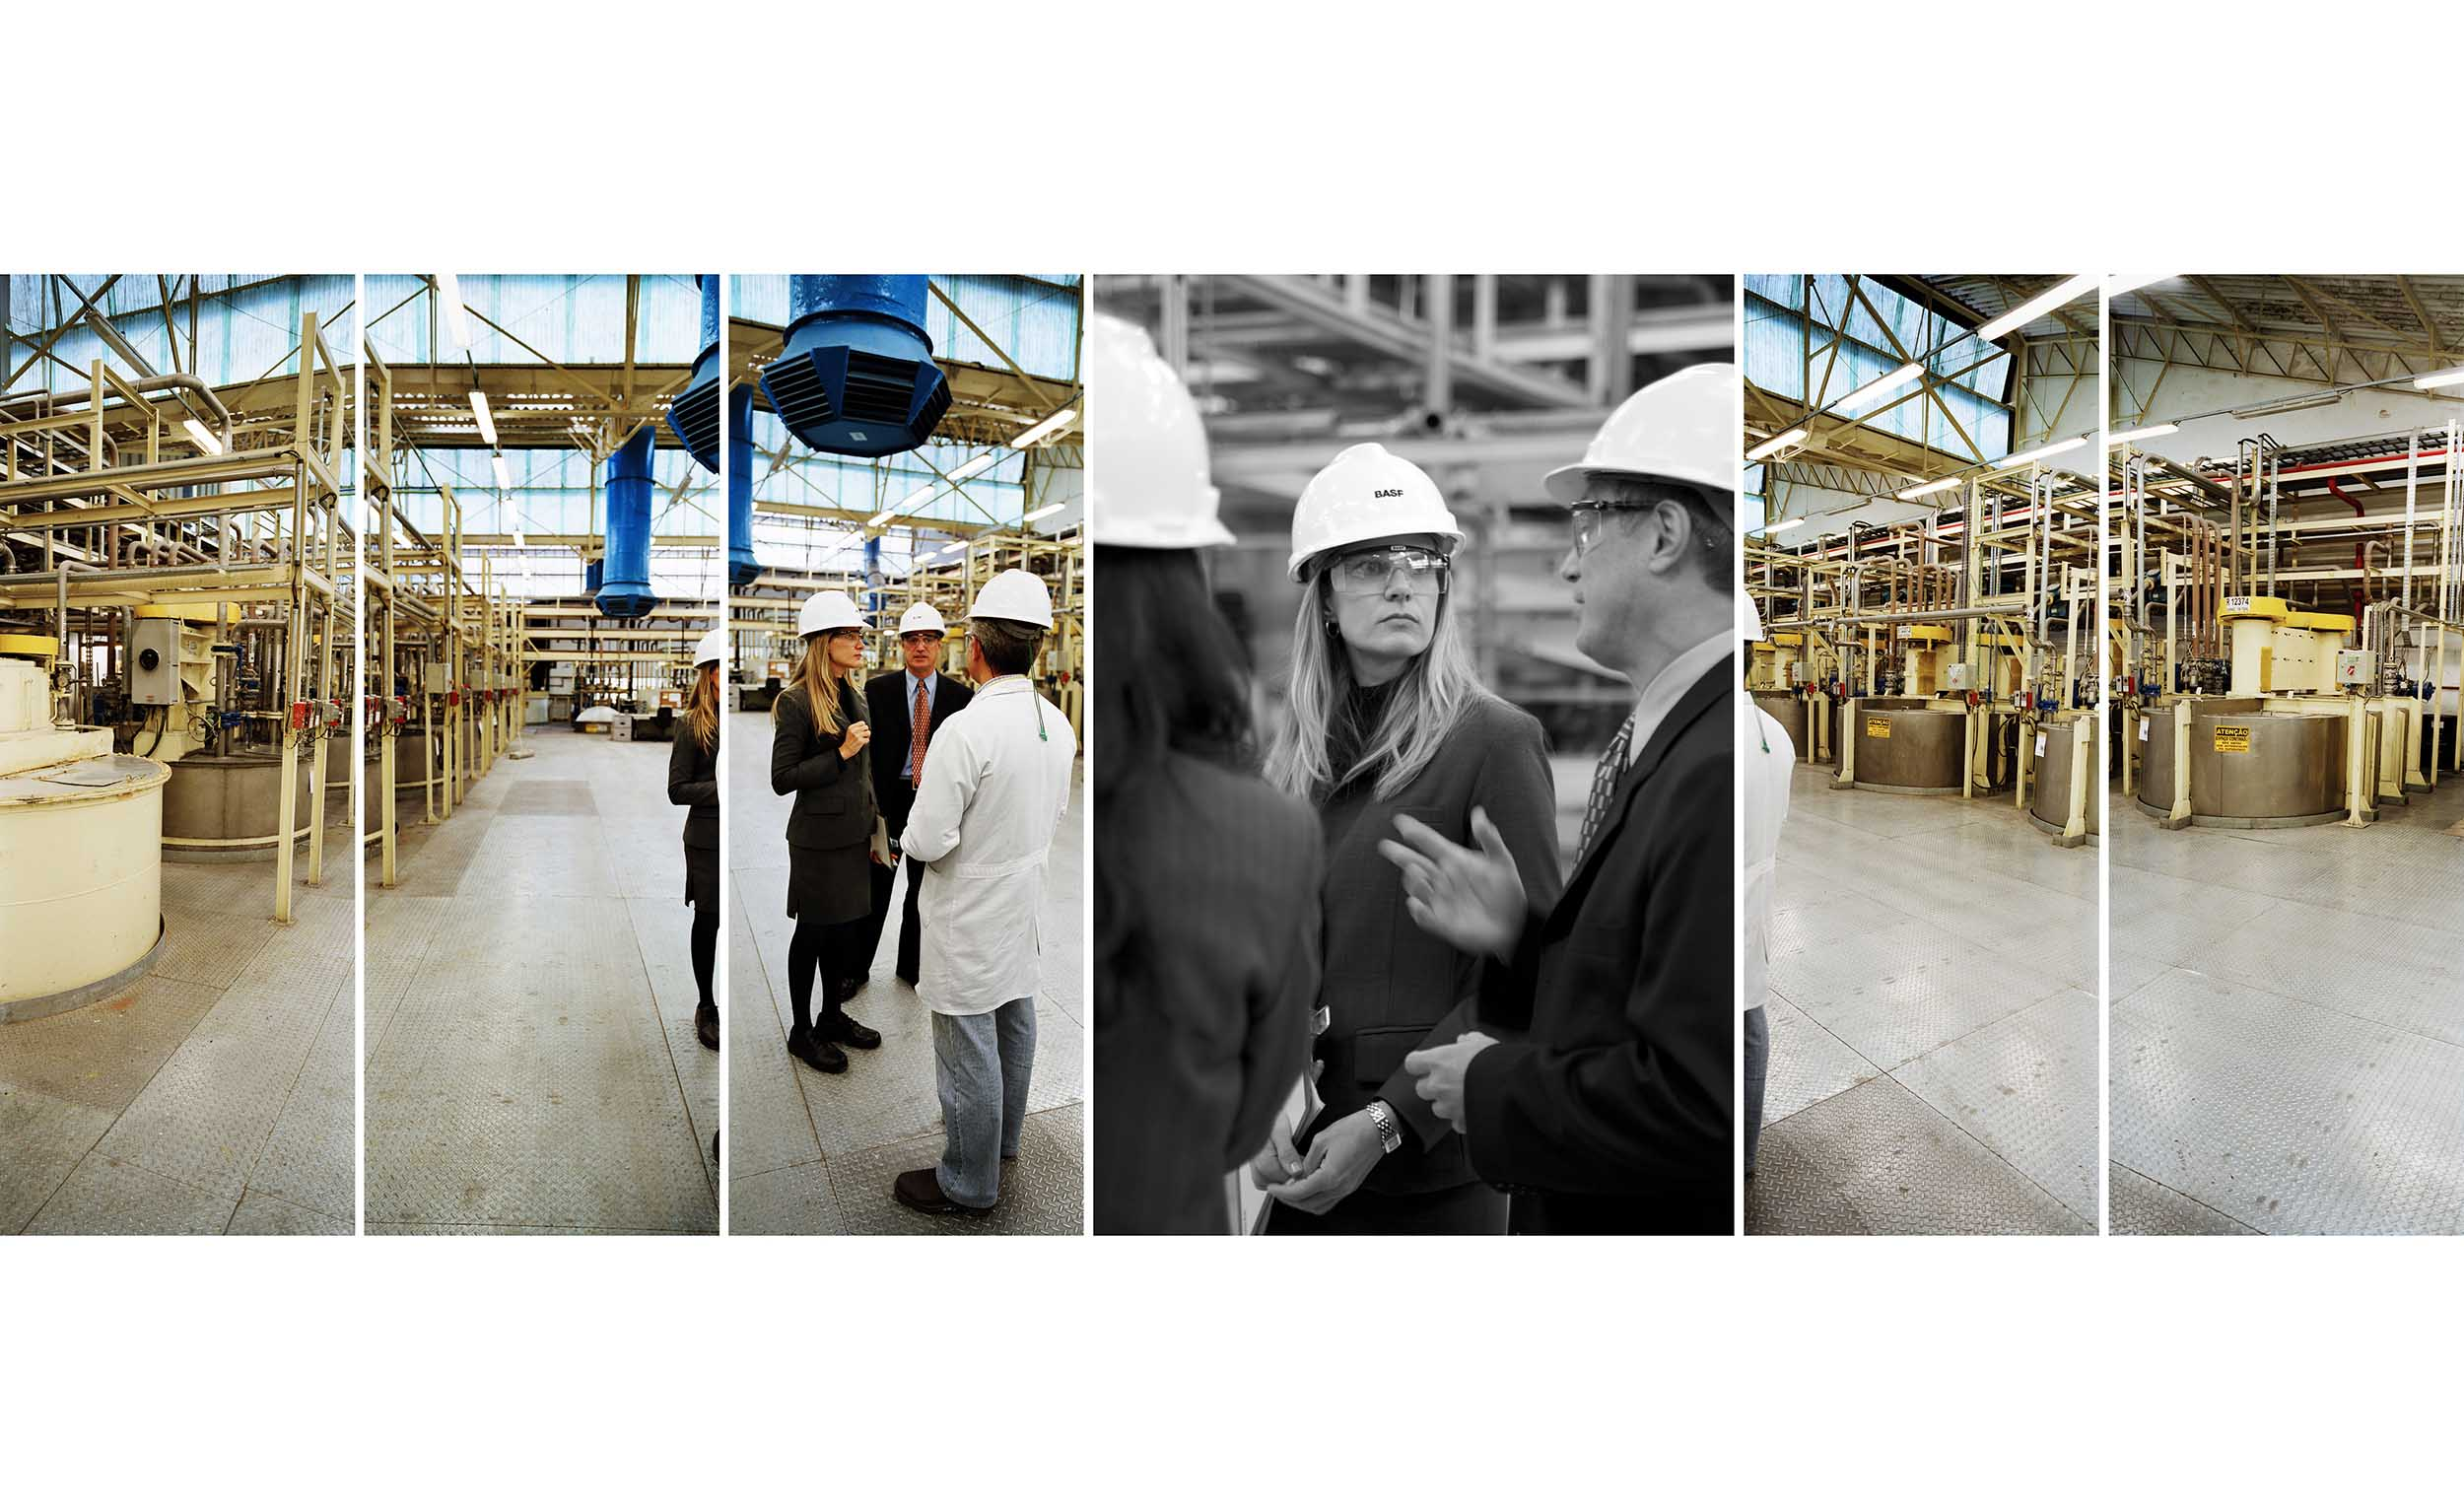 basf_FactoryCombined_20in_f copy.jpg